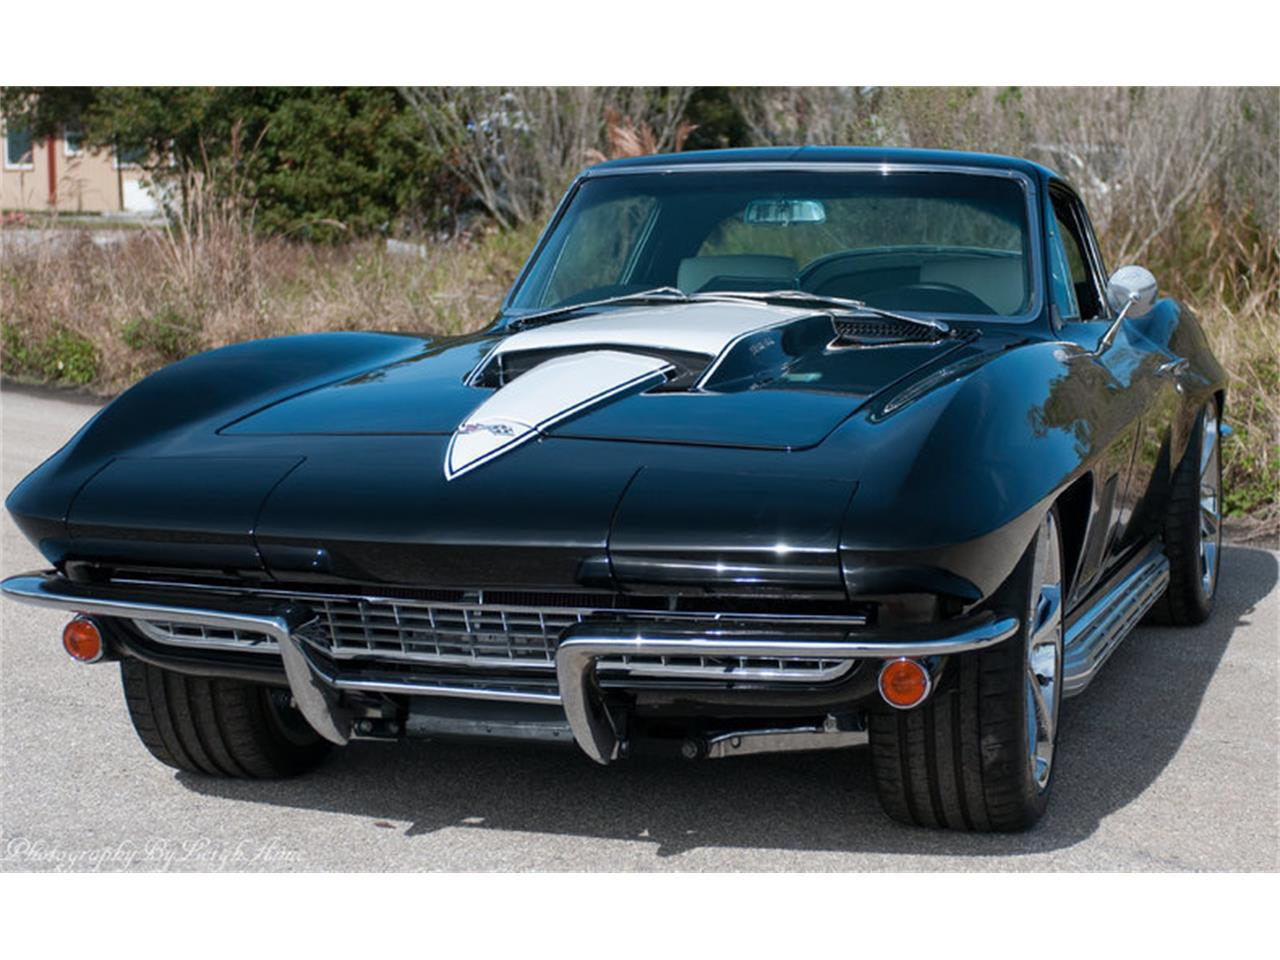 Large Picture of '67 Corvette located in Punta Gorda Florida Auction Vehicle Offered by Premier Auction Group - NF44